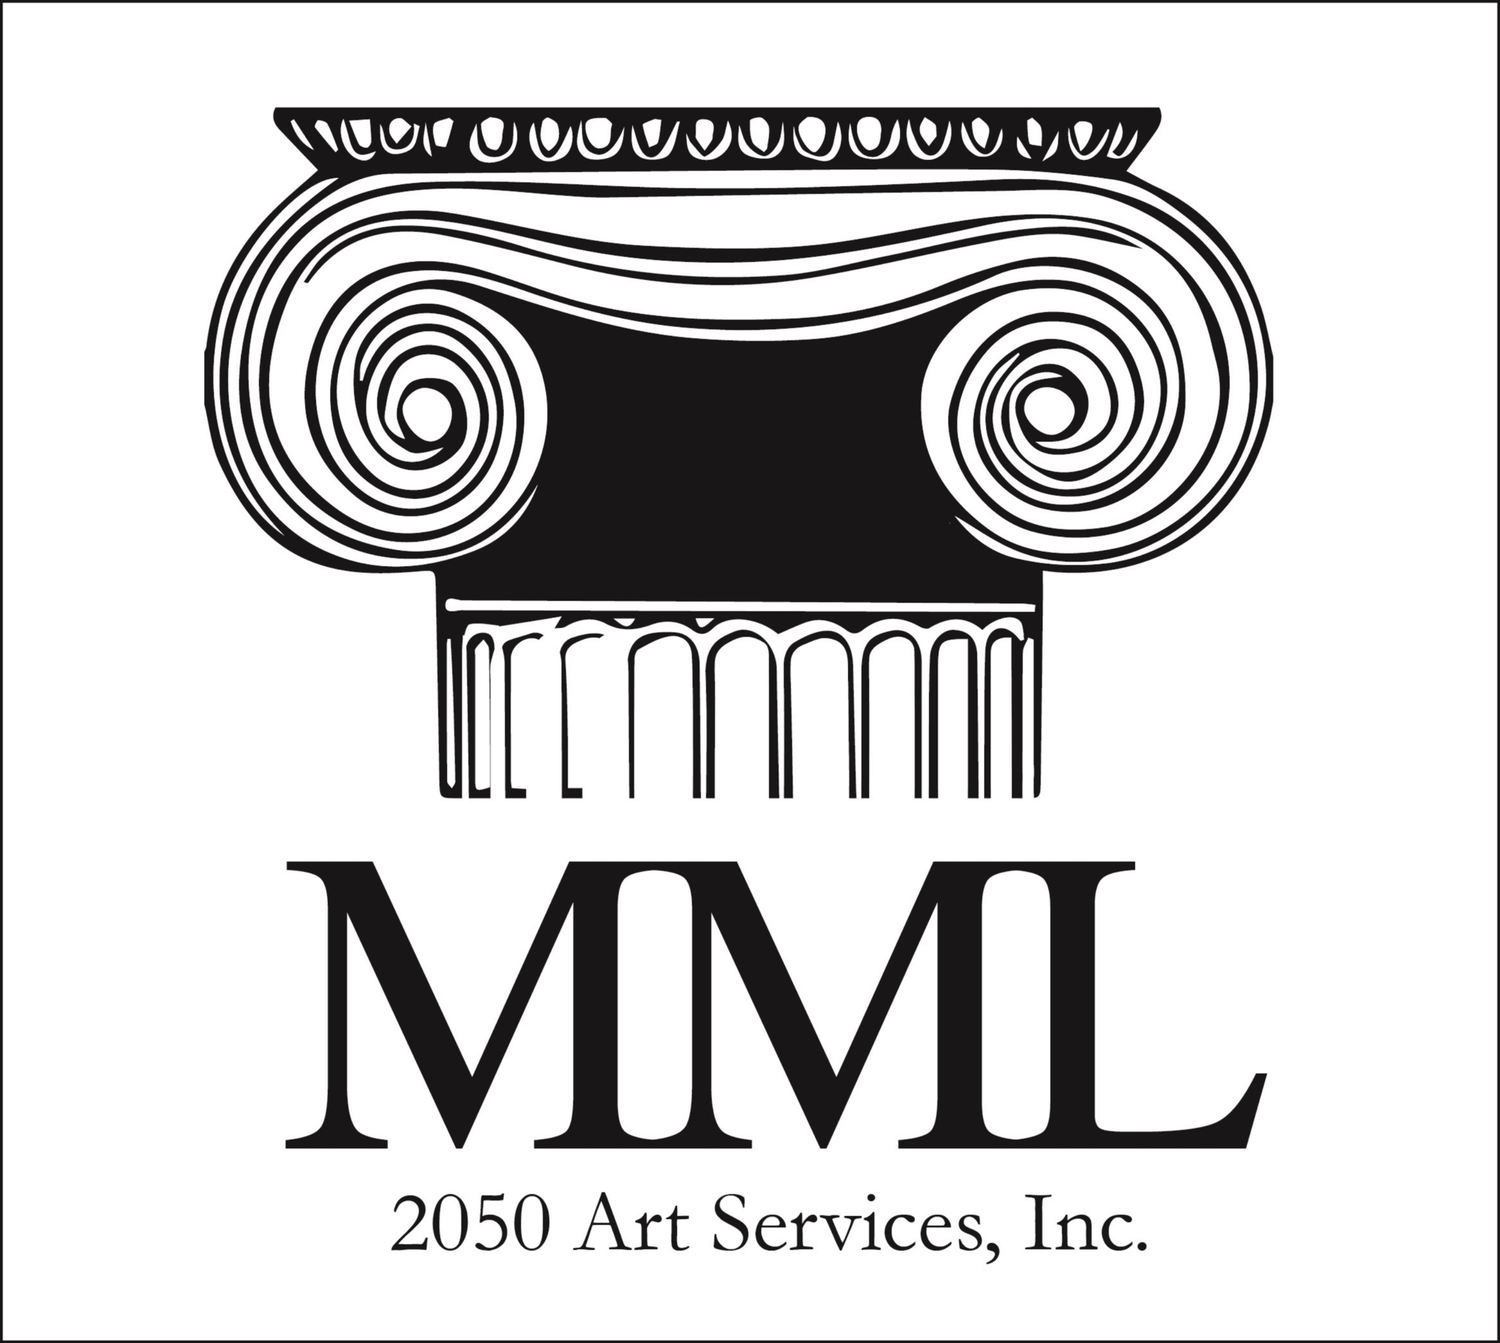 2050 Art Services, Inc.